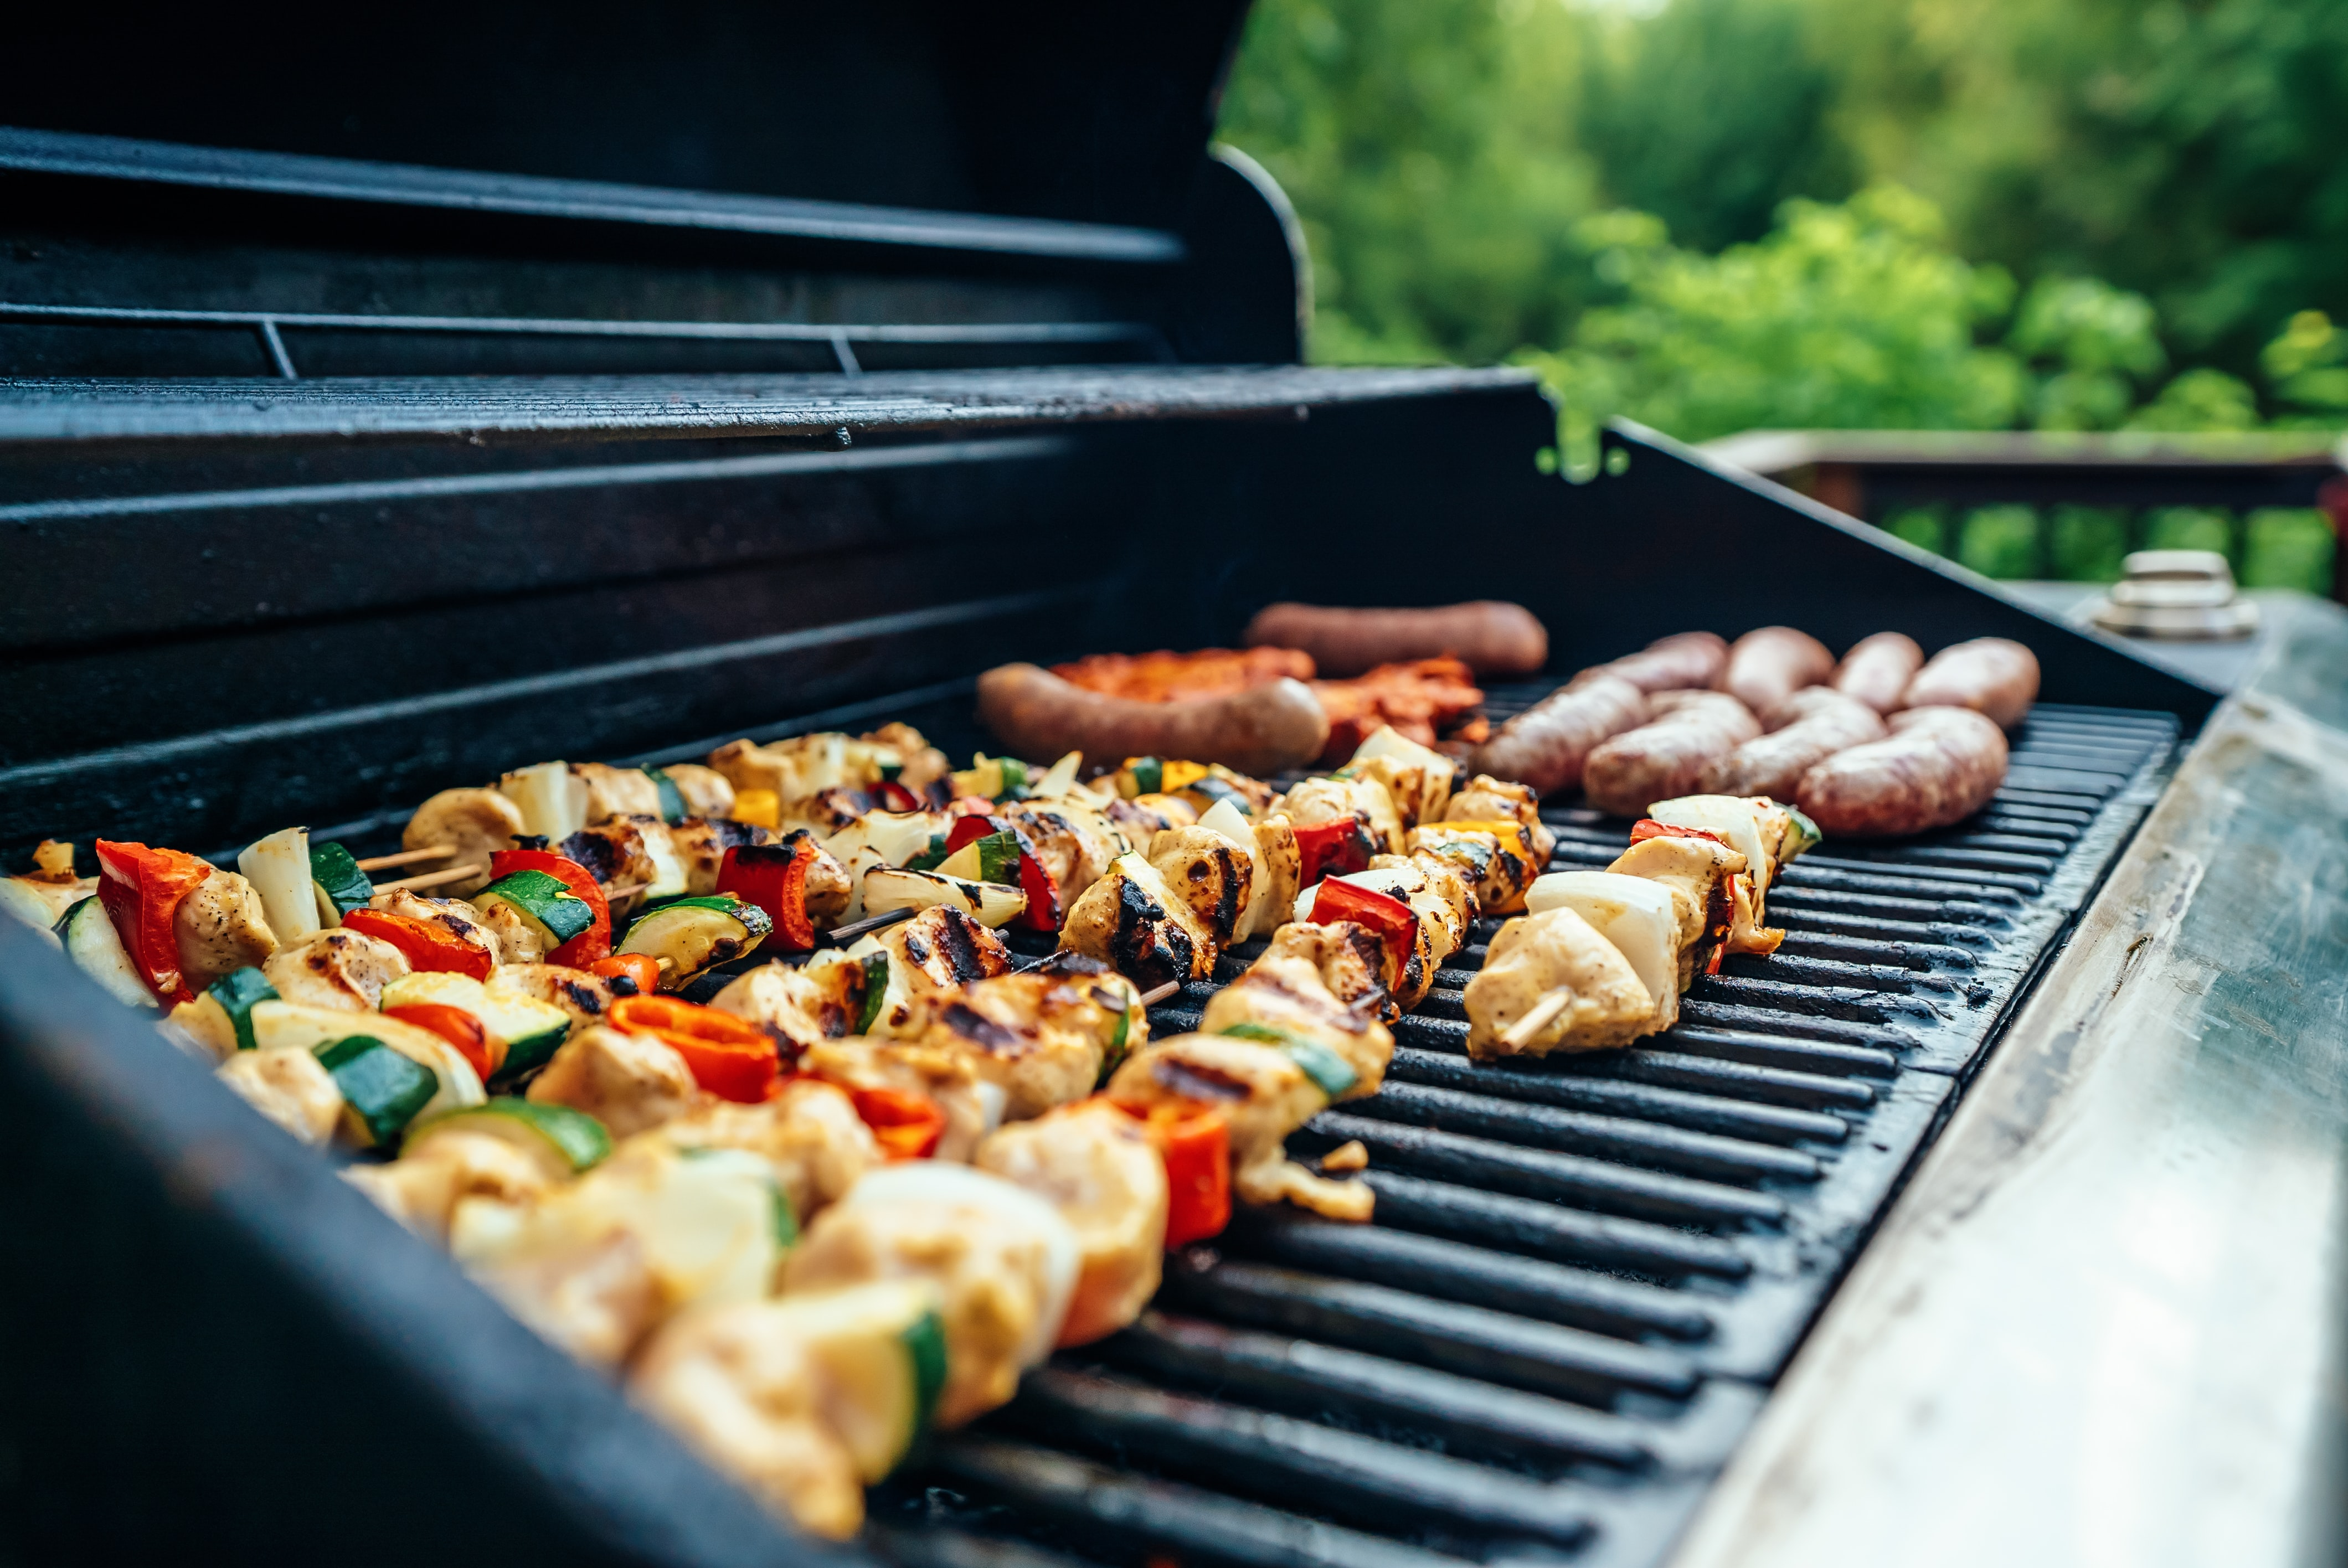 paradise grilling systems